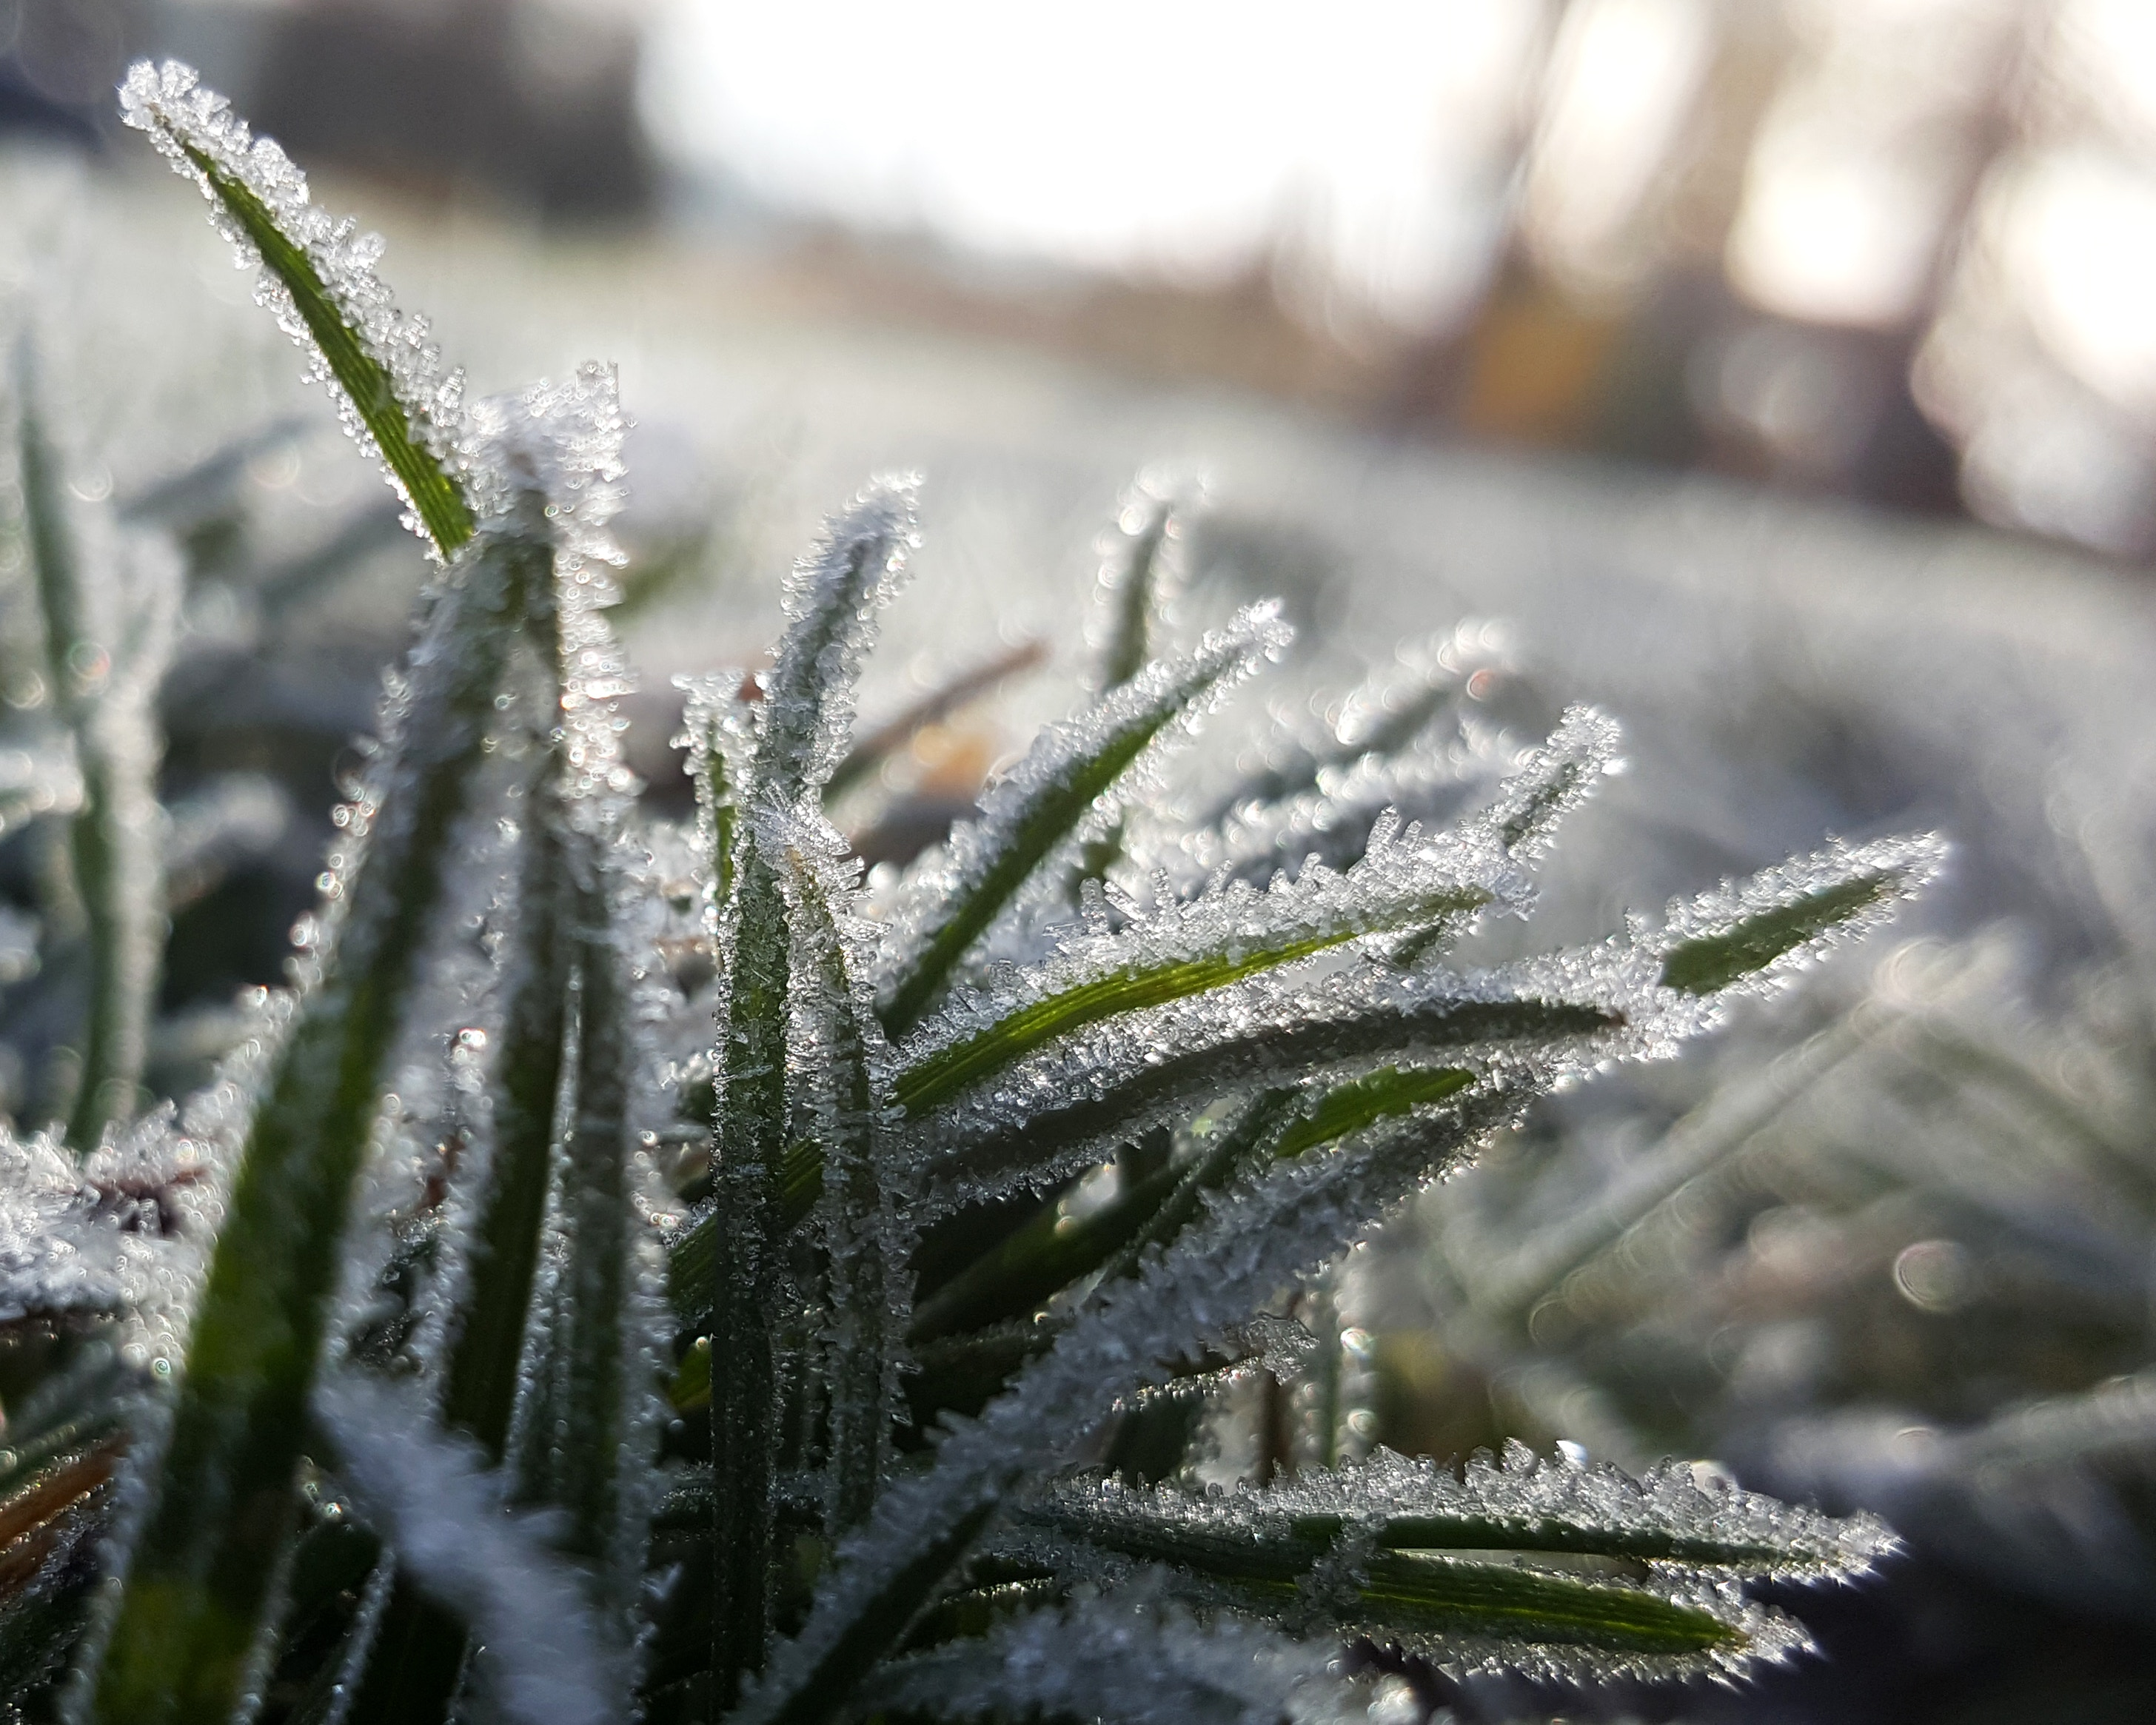 How To Avoid Frost Damage On Your Lawn - Featured Image